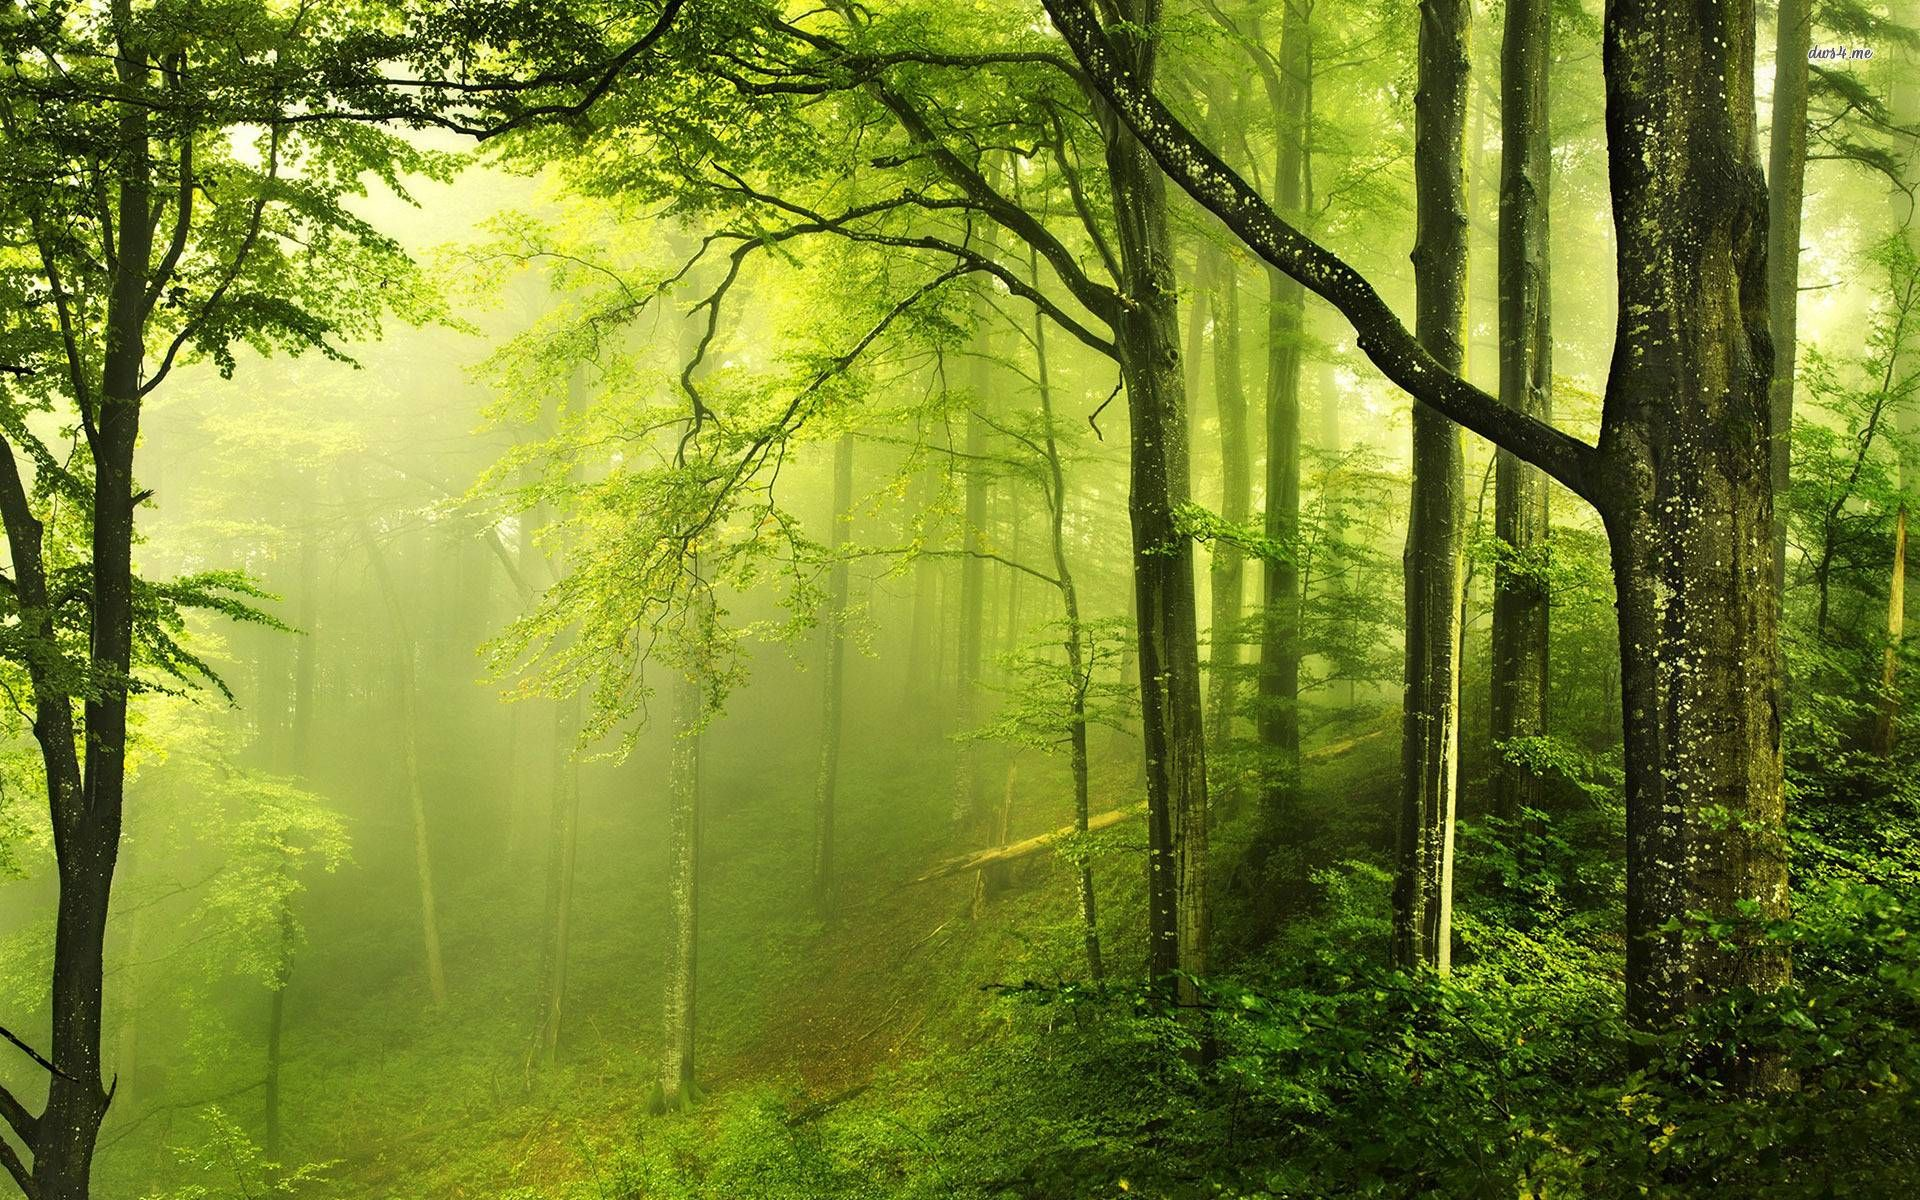 Green Forest Wallpapers Full Hd Wallpaper Search Page 7 Nature Images Landscape Trees Forest Wallpaper